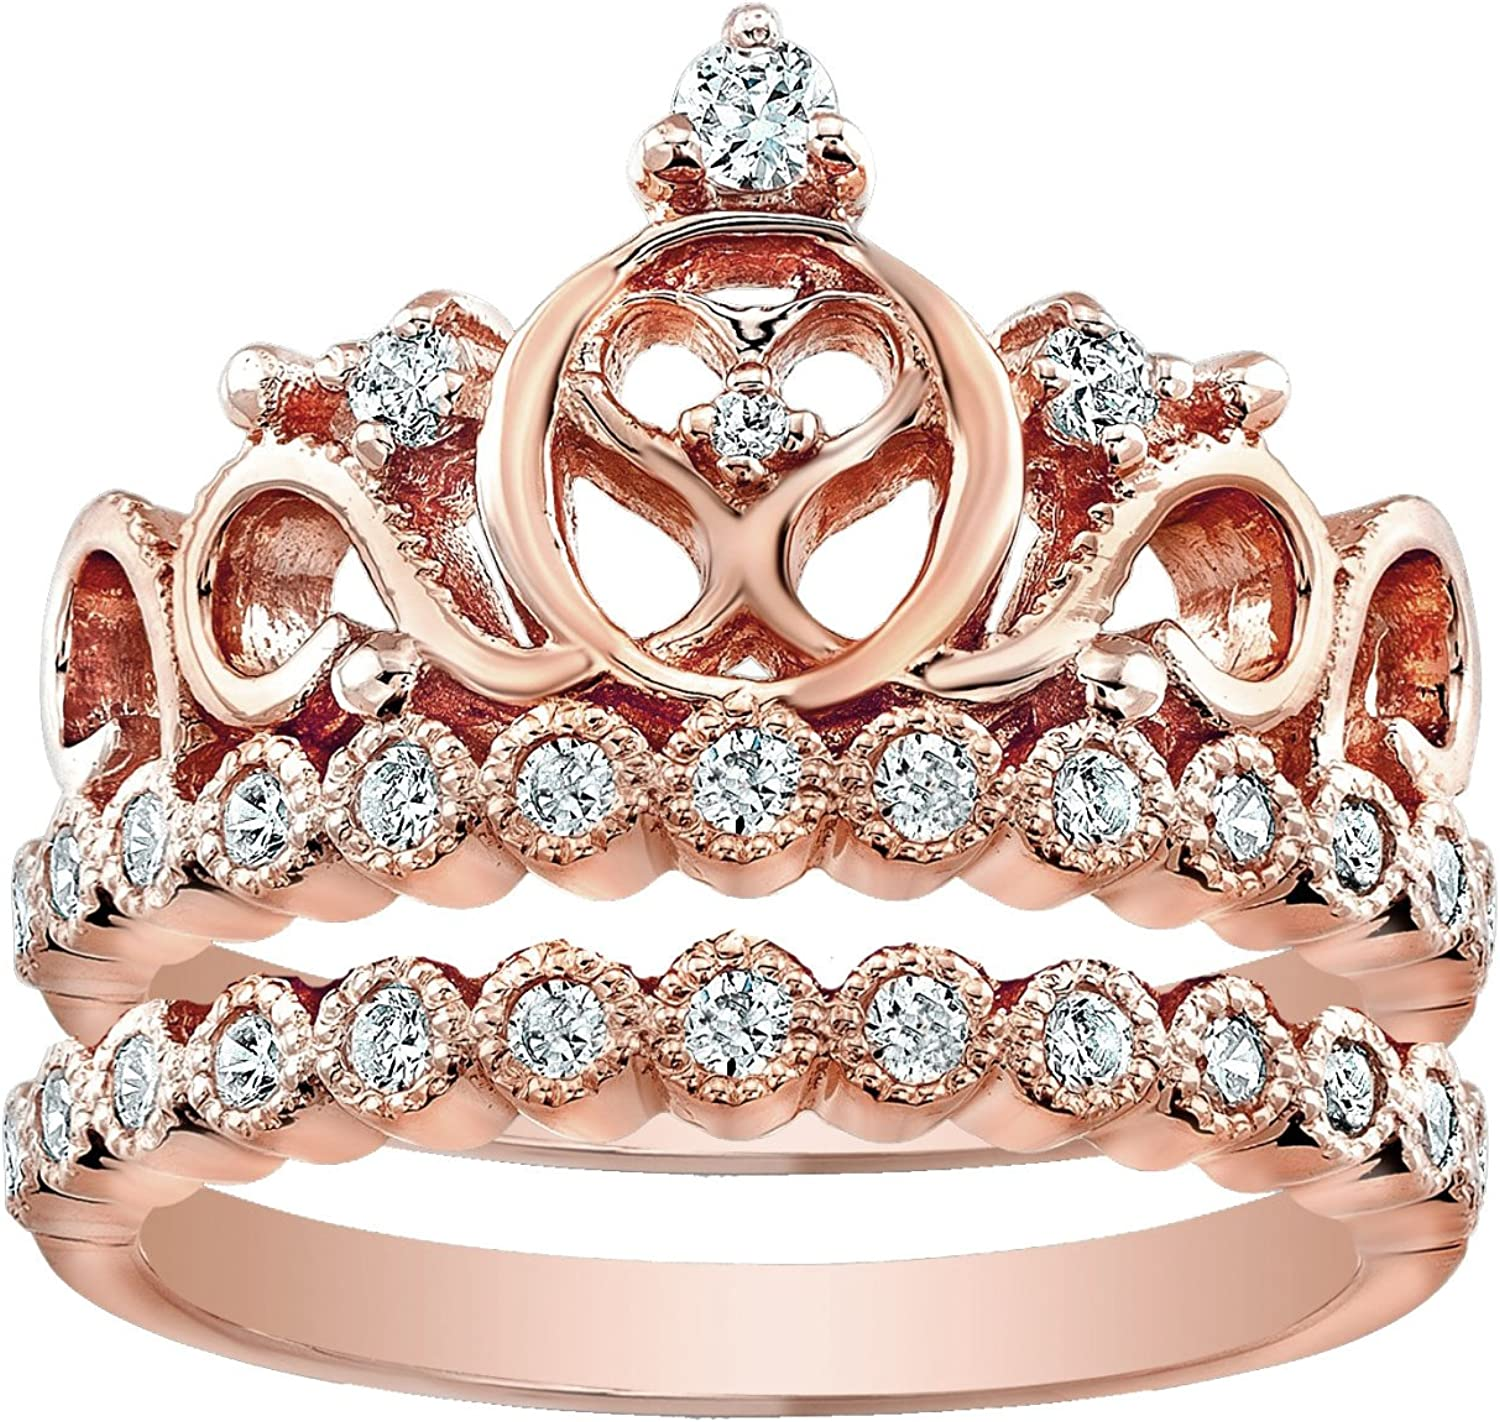 Guliette Verona Sterling 2021 model Silver Reservation Heart Crown Set Ring and R Band